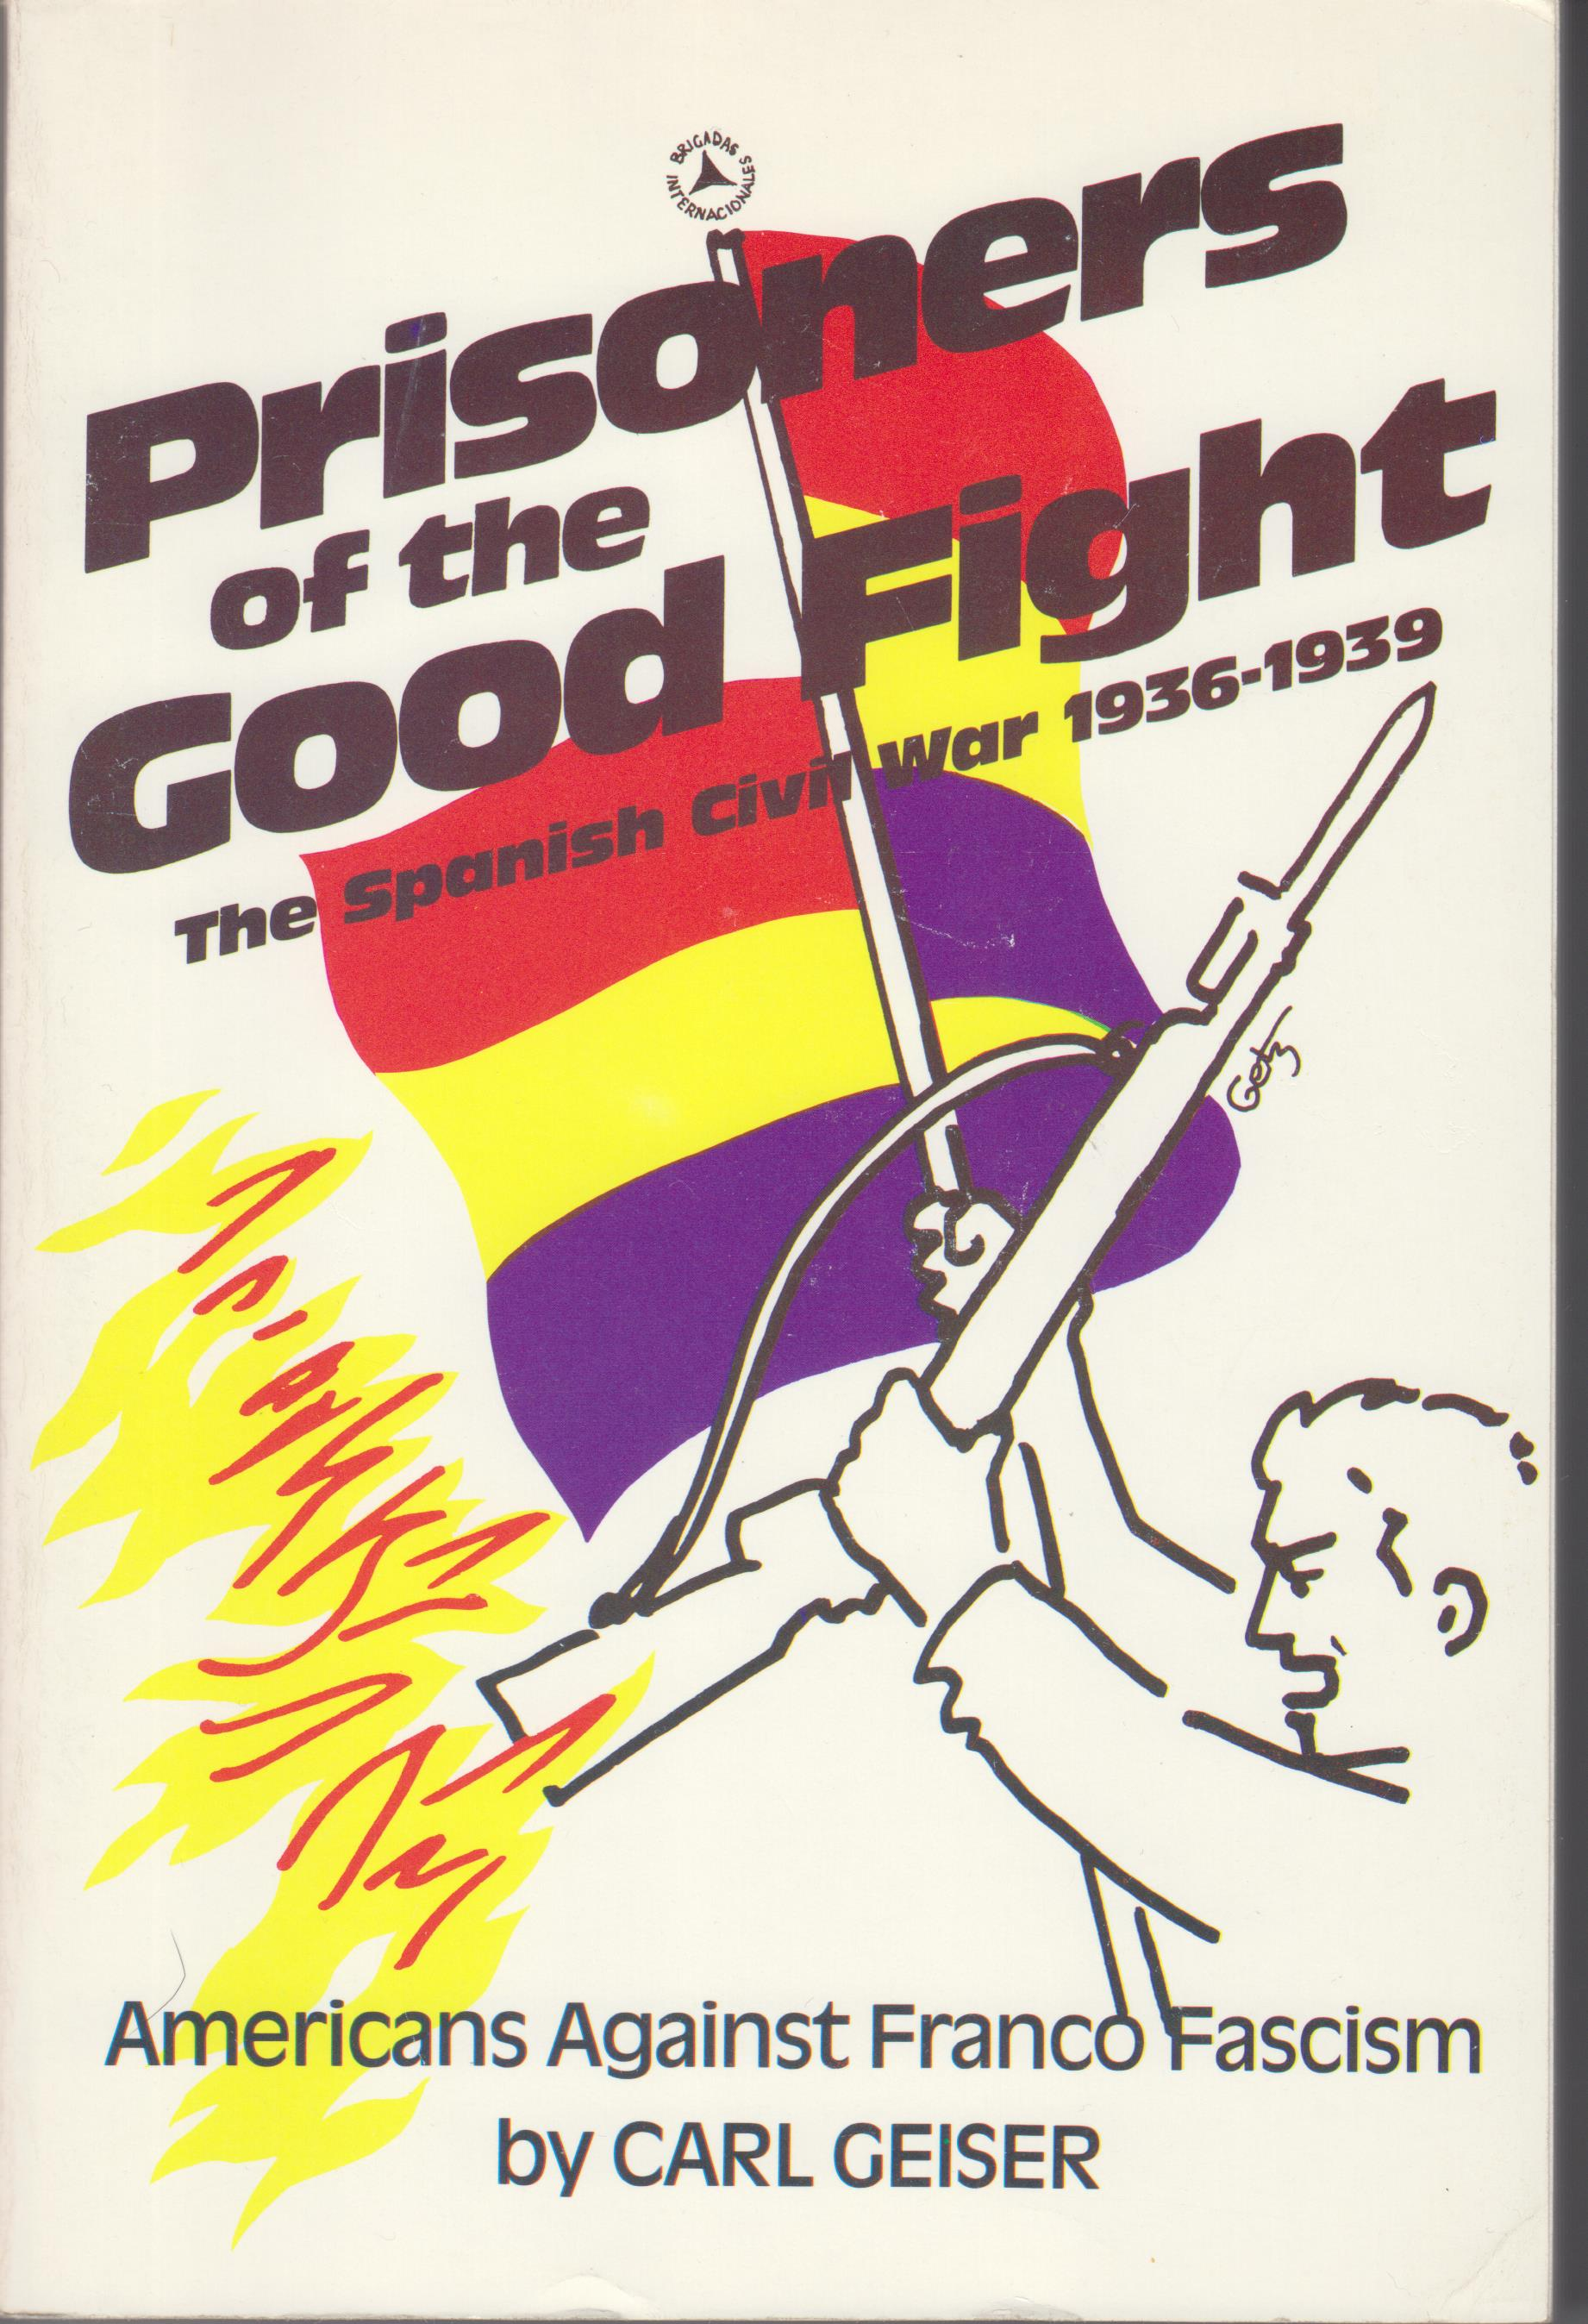 Image for Prisoners of the Good Fight. The Spanish Civil War 1936-1939